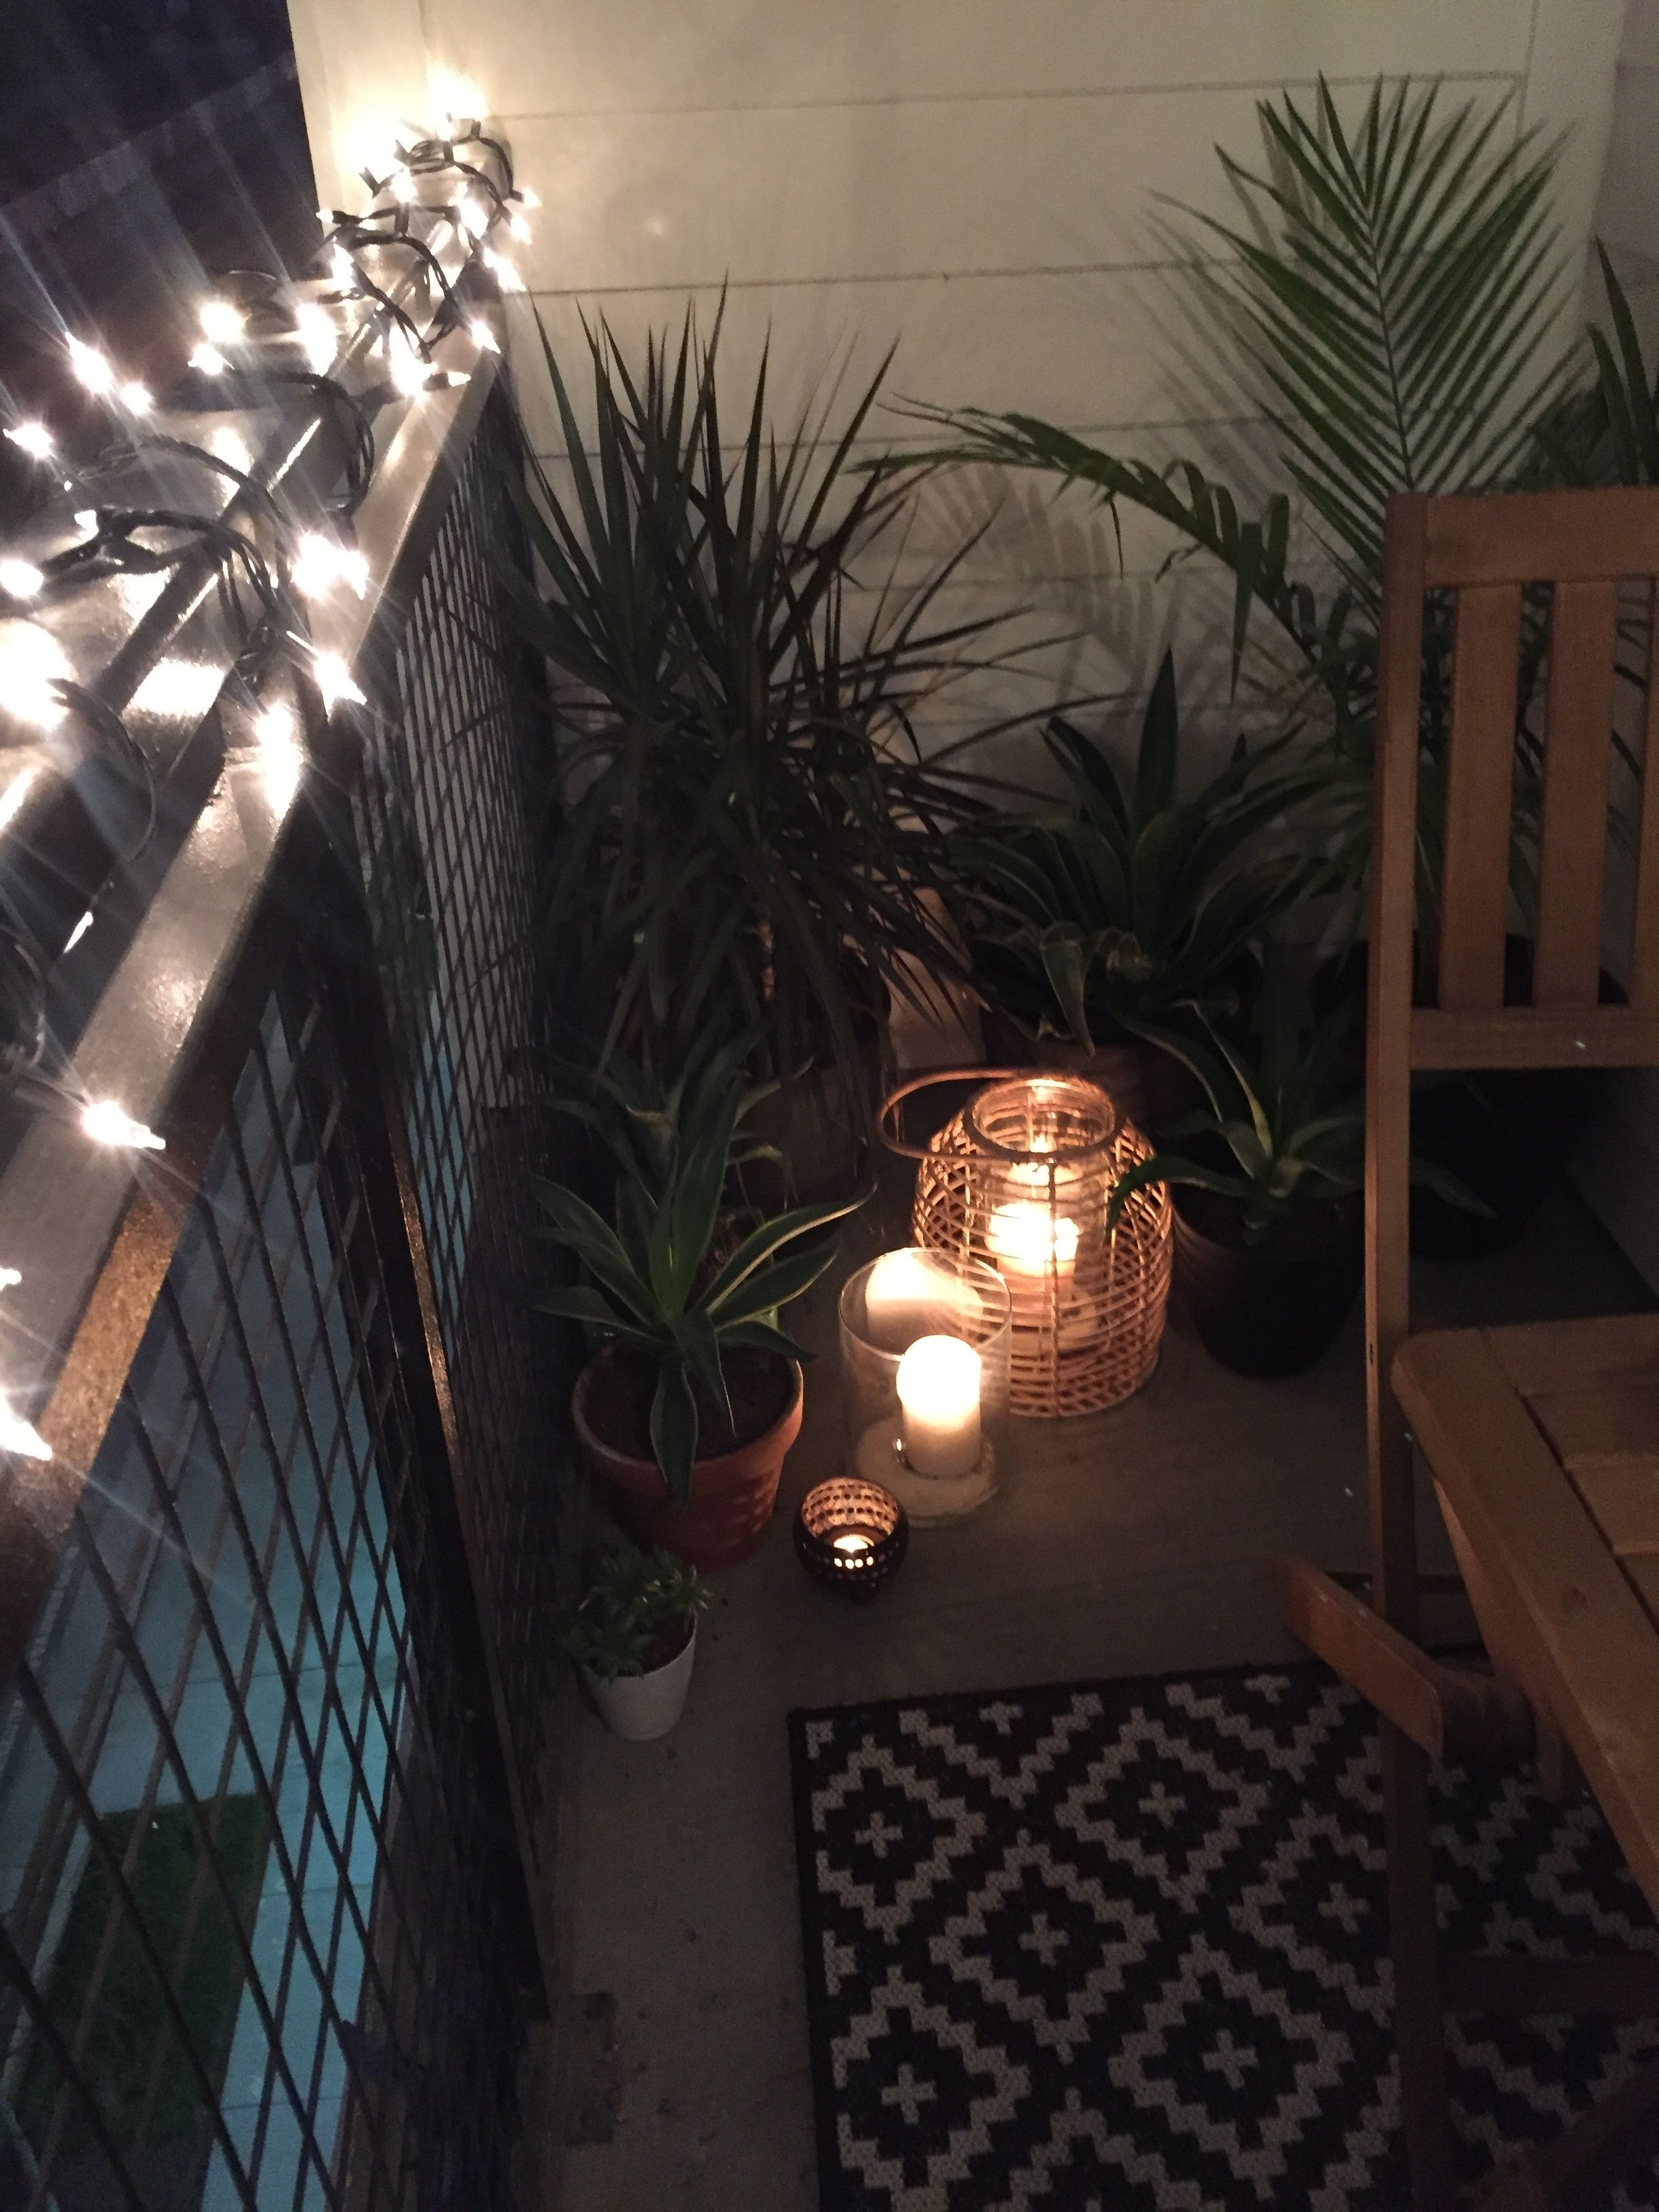 Preferred Outdoor Rope Lighting Ideas Elegant Tropical Plants Candles Lanterns Pertaining To Outdoor Rope Lanterns (View 6 of 20)